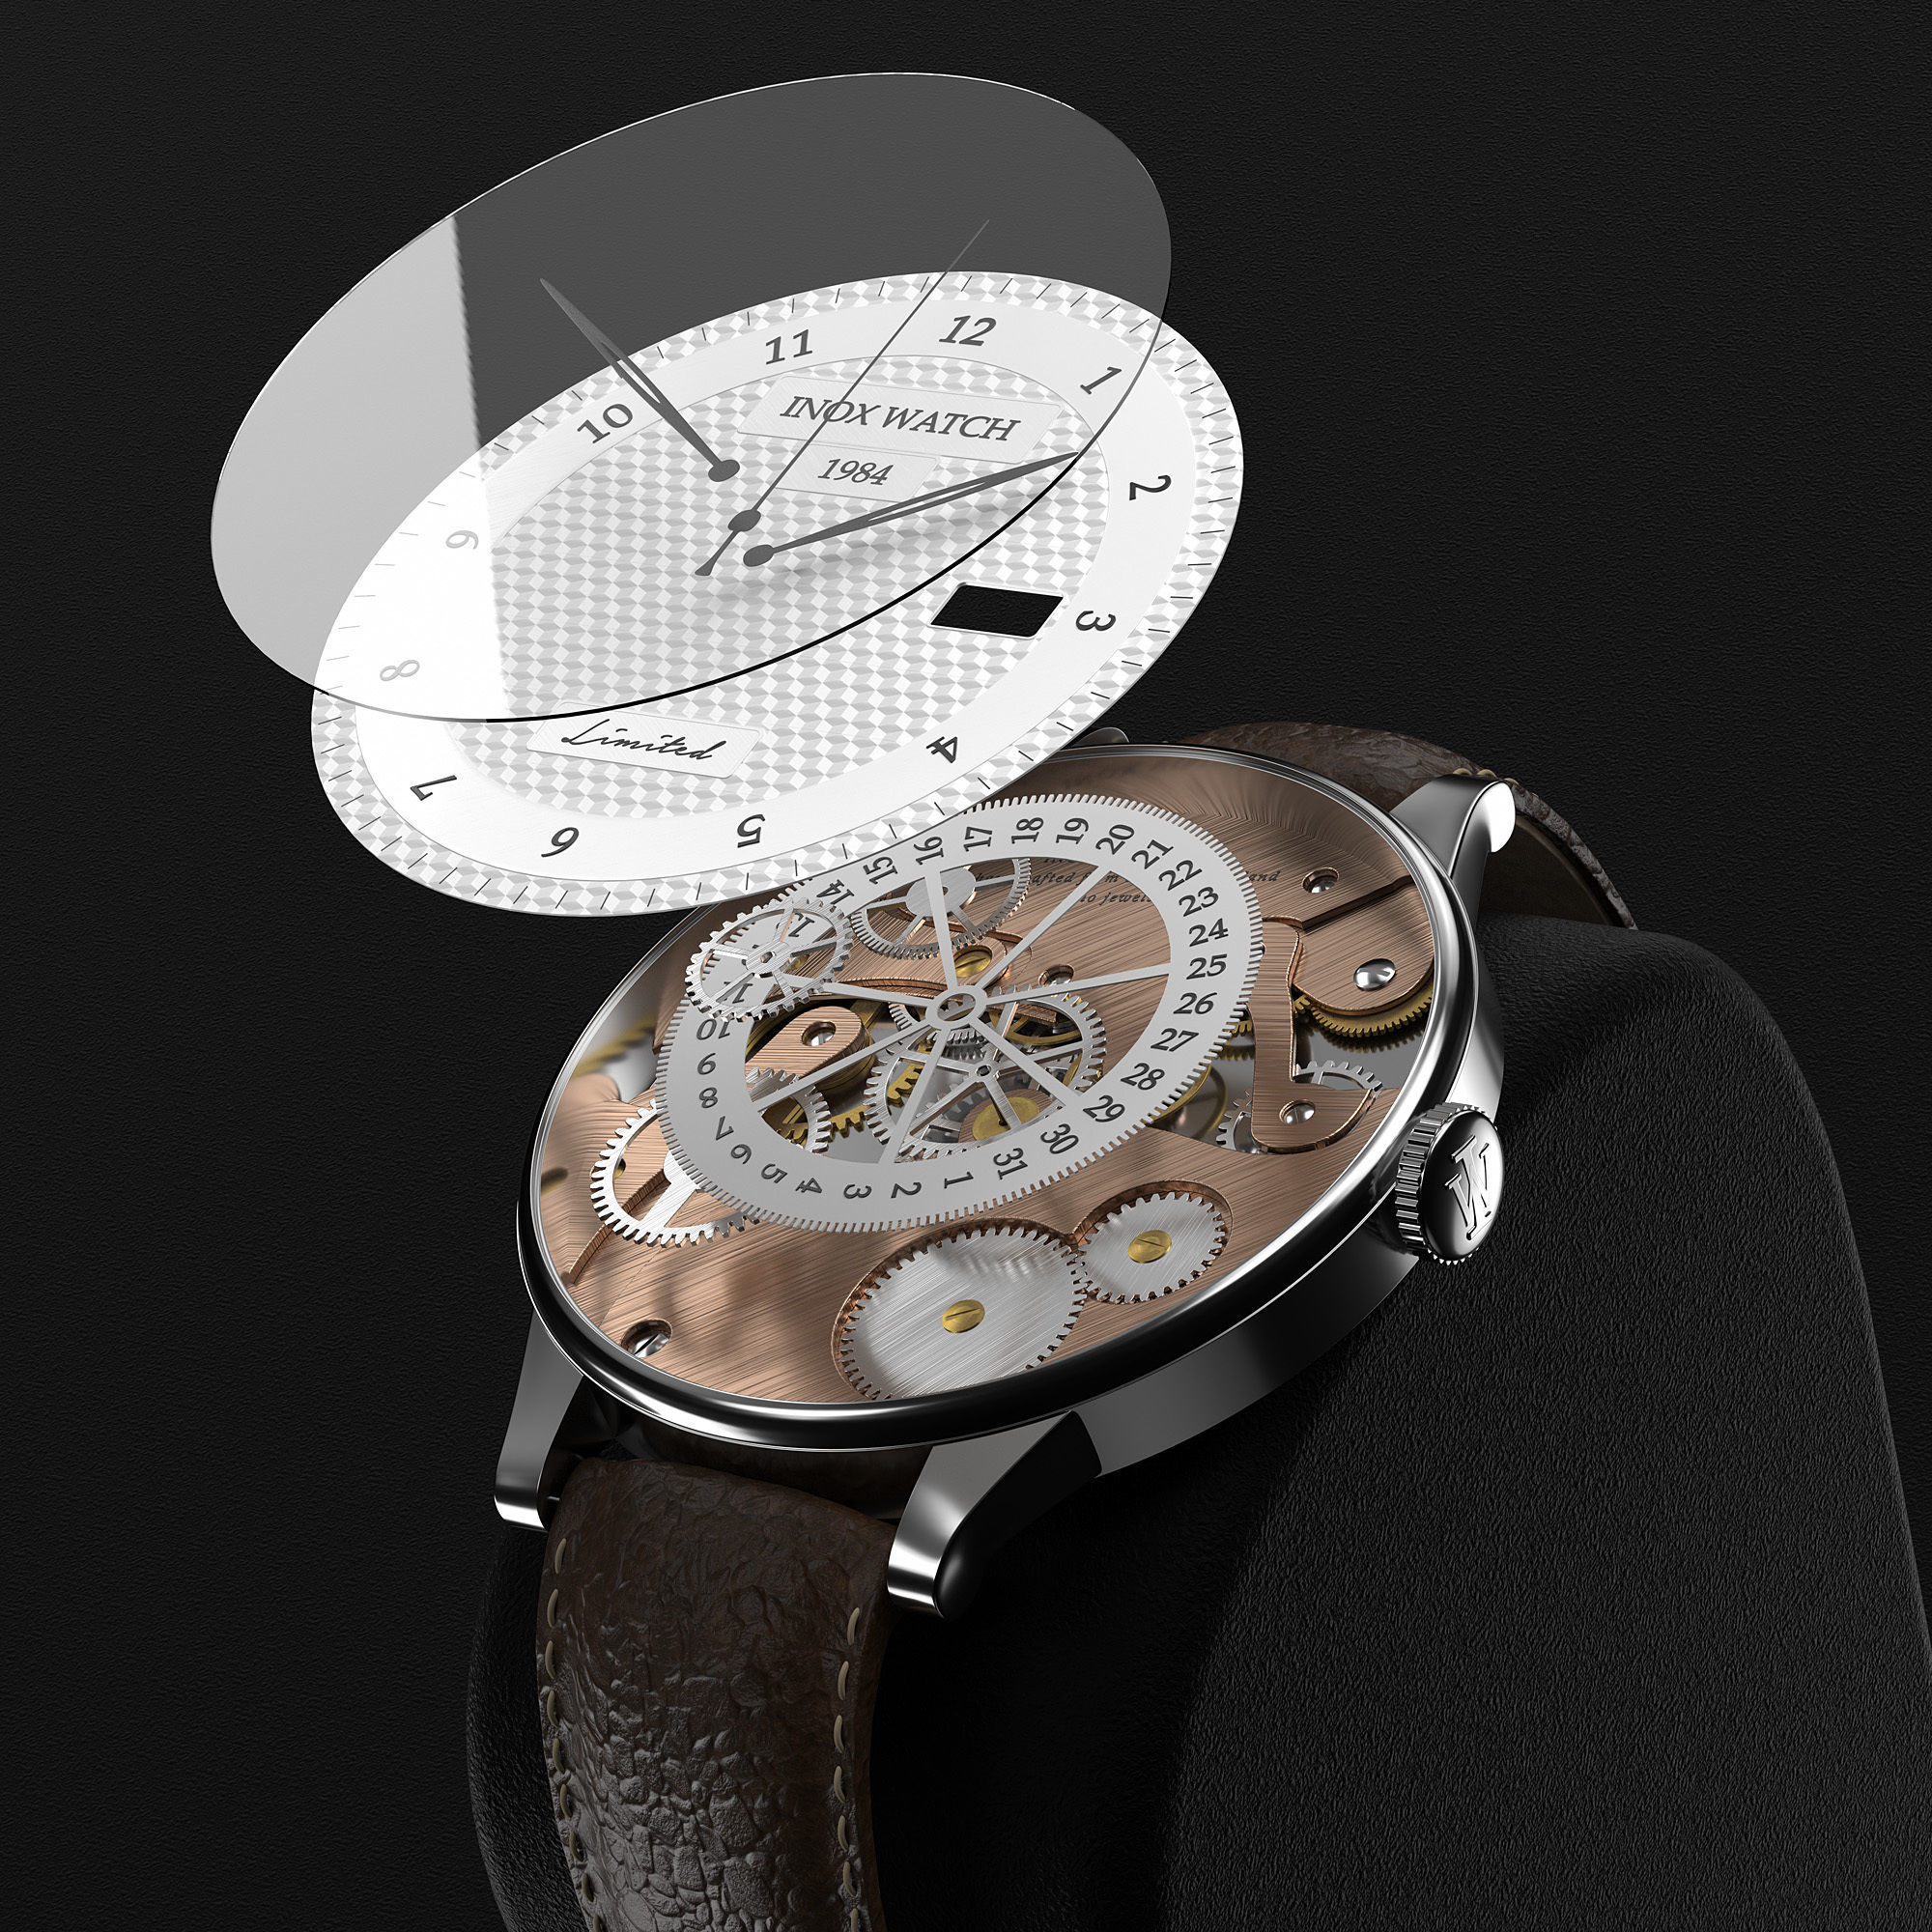 Generic watch for visualization